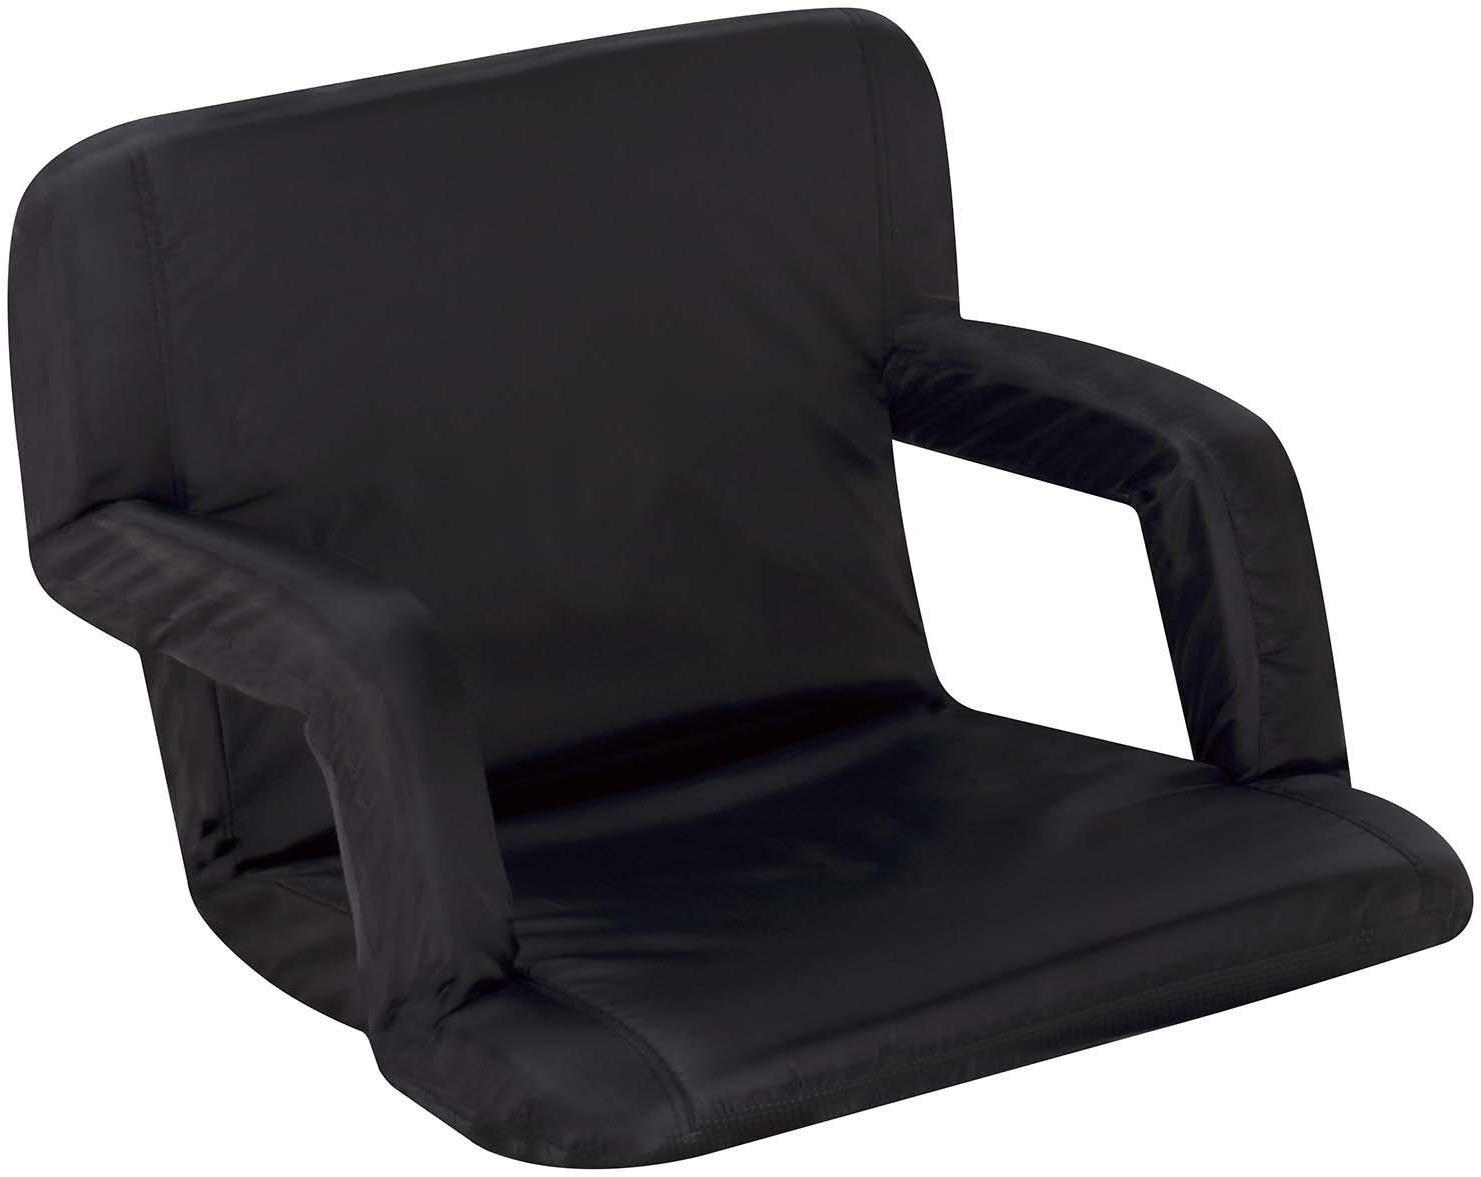 Portable Recliner Chair Naomi Home Naomi Home Venice Portable Reclining Seat With